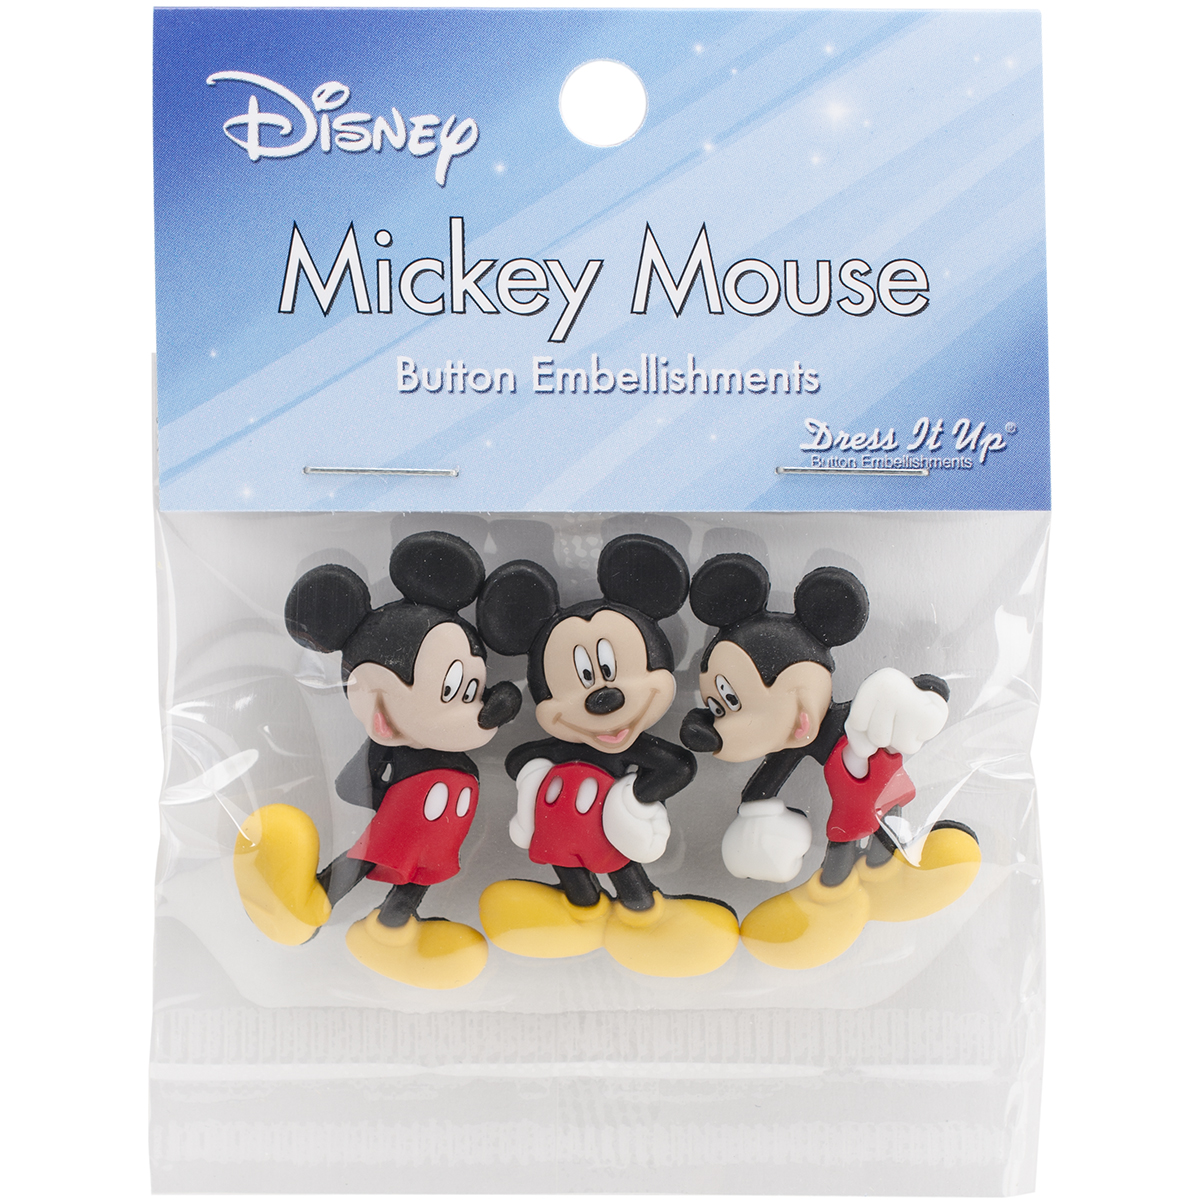 Dress It Up Licensed Embellishments-Disney Mickey Mouse